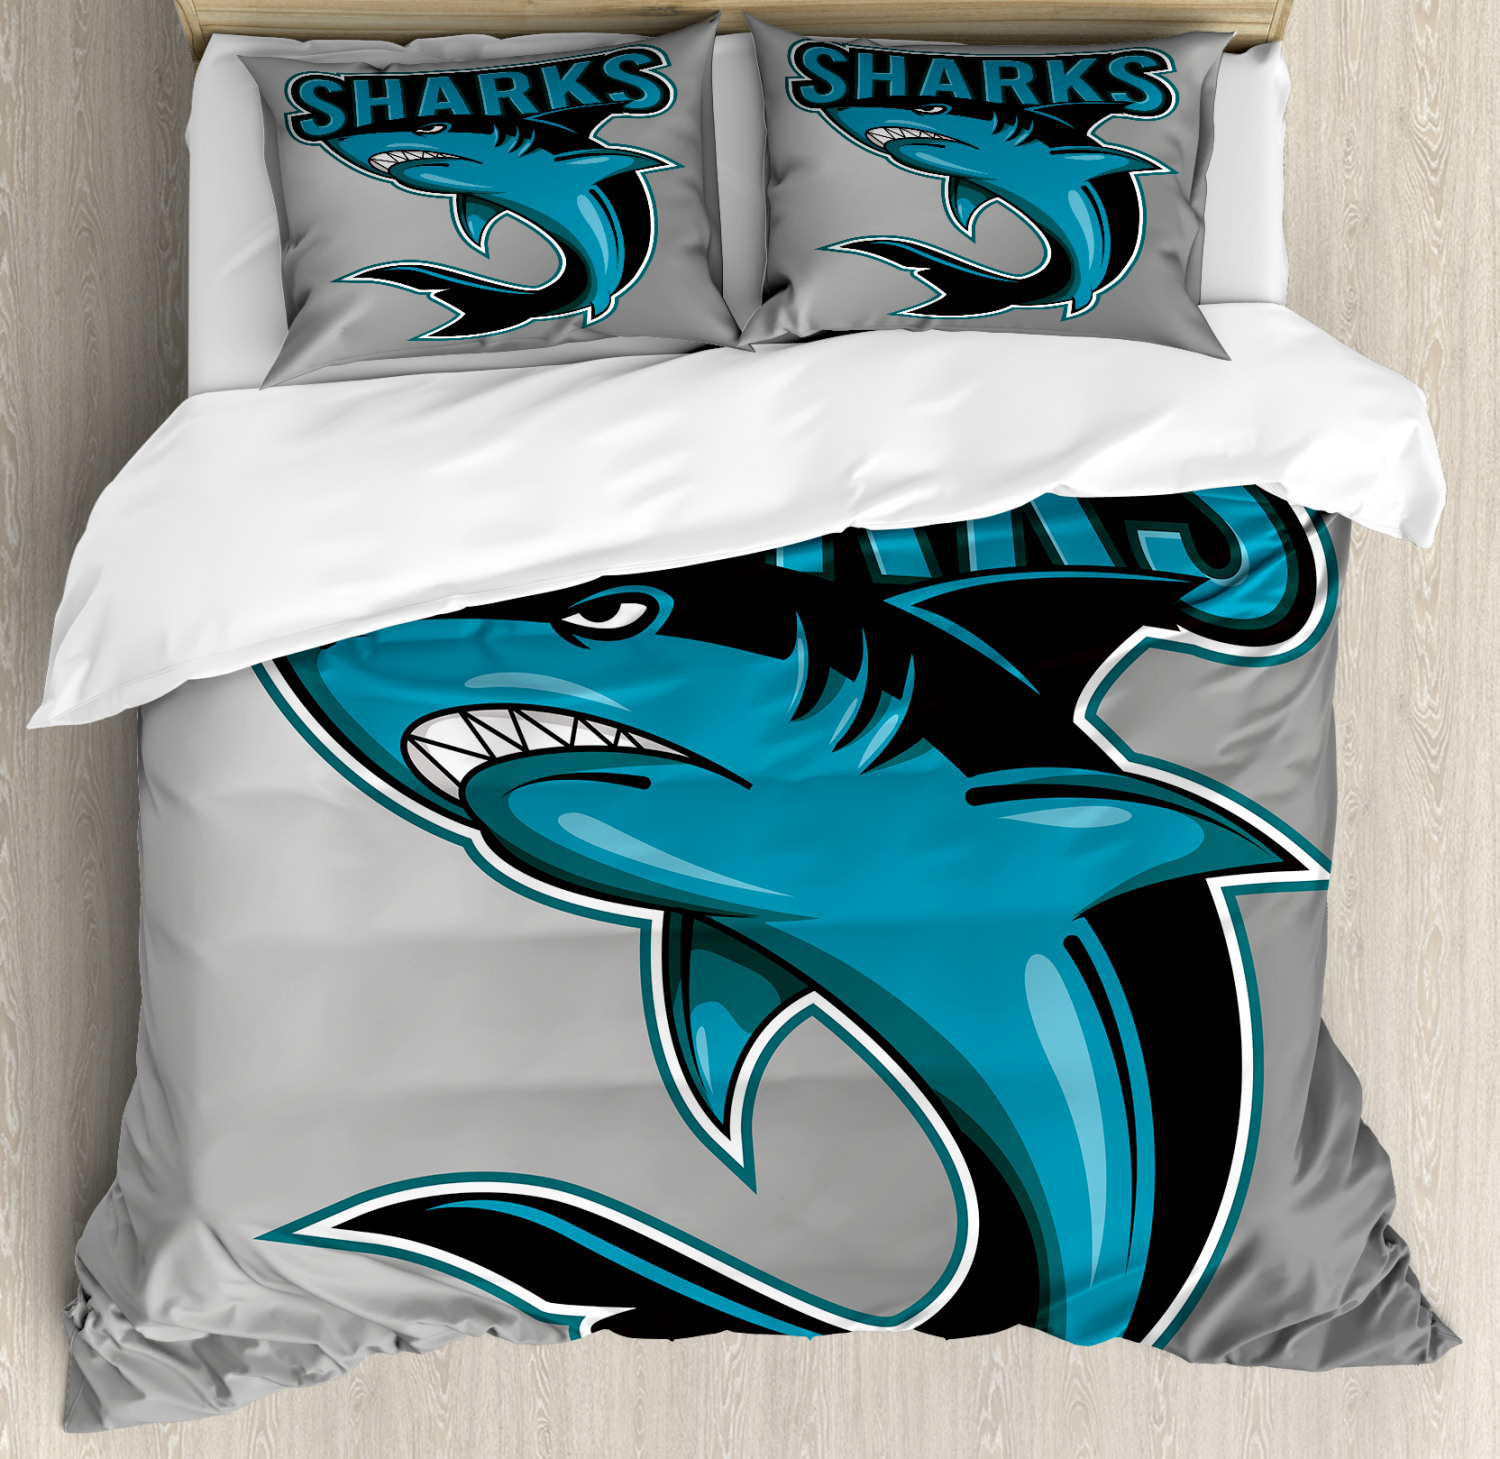 Shark Duvet Cover Set with Pillow Shams Angry Danger Fish Fins Print